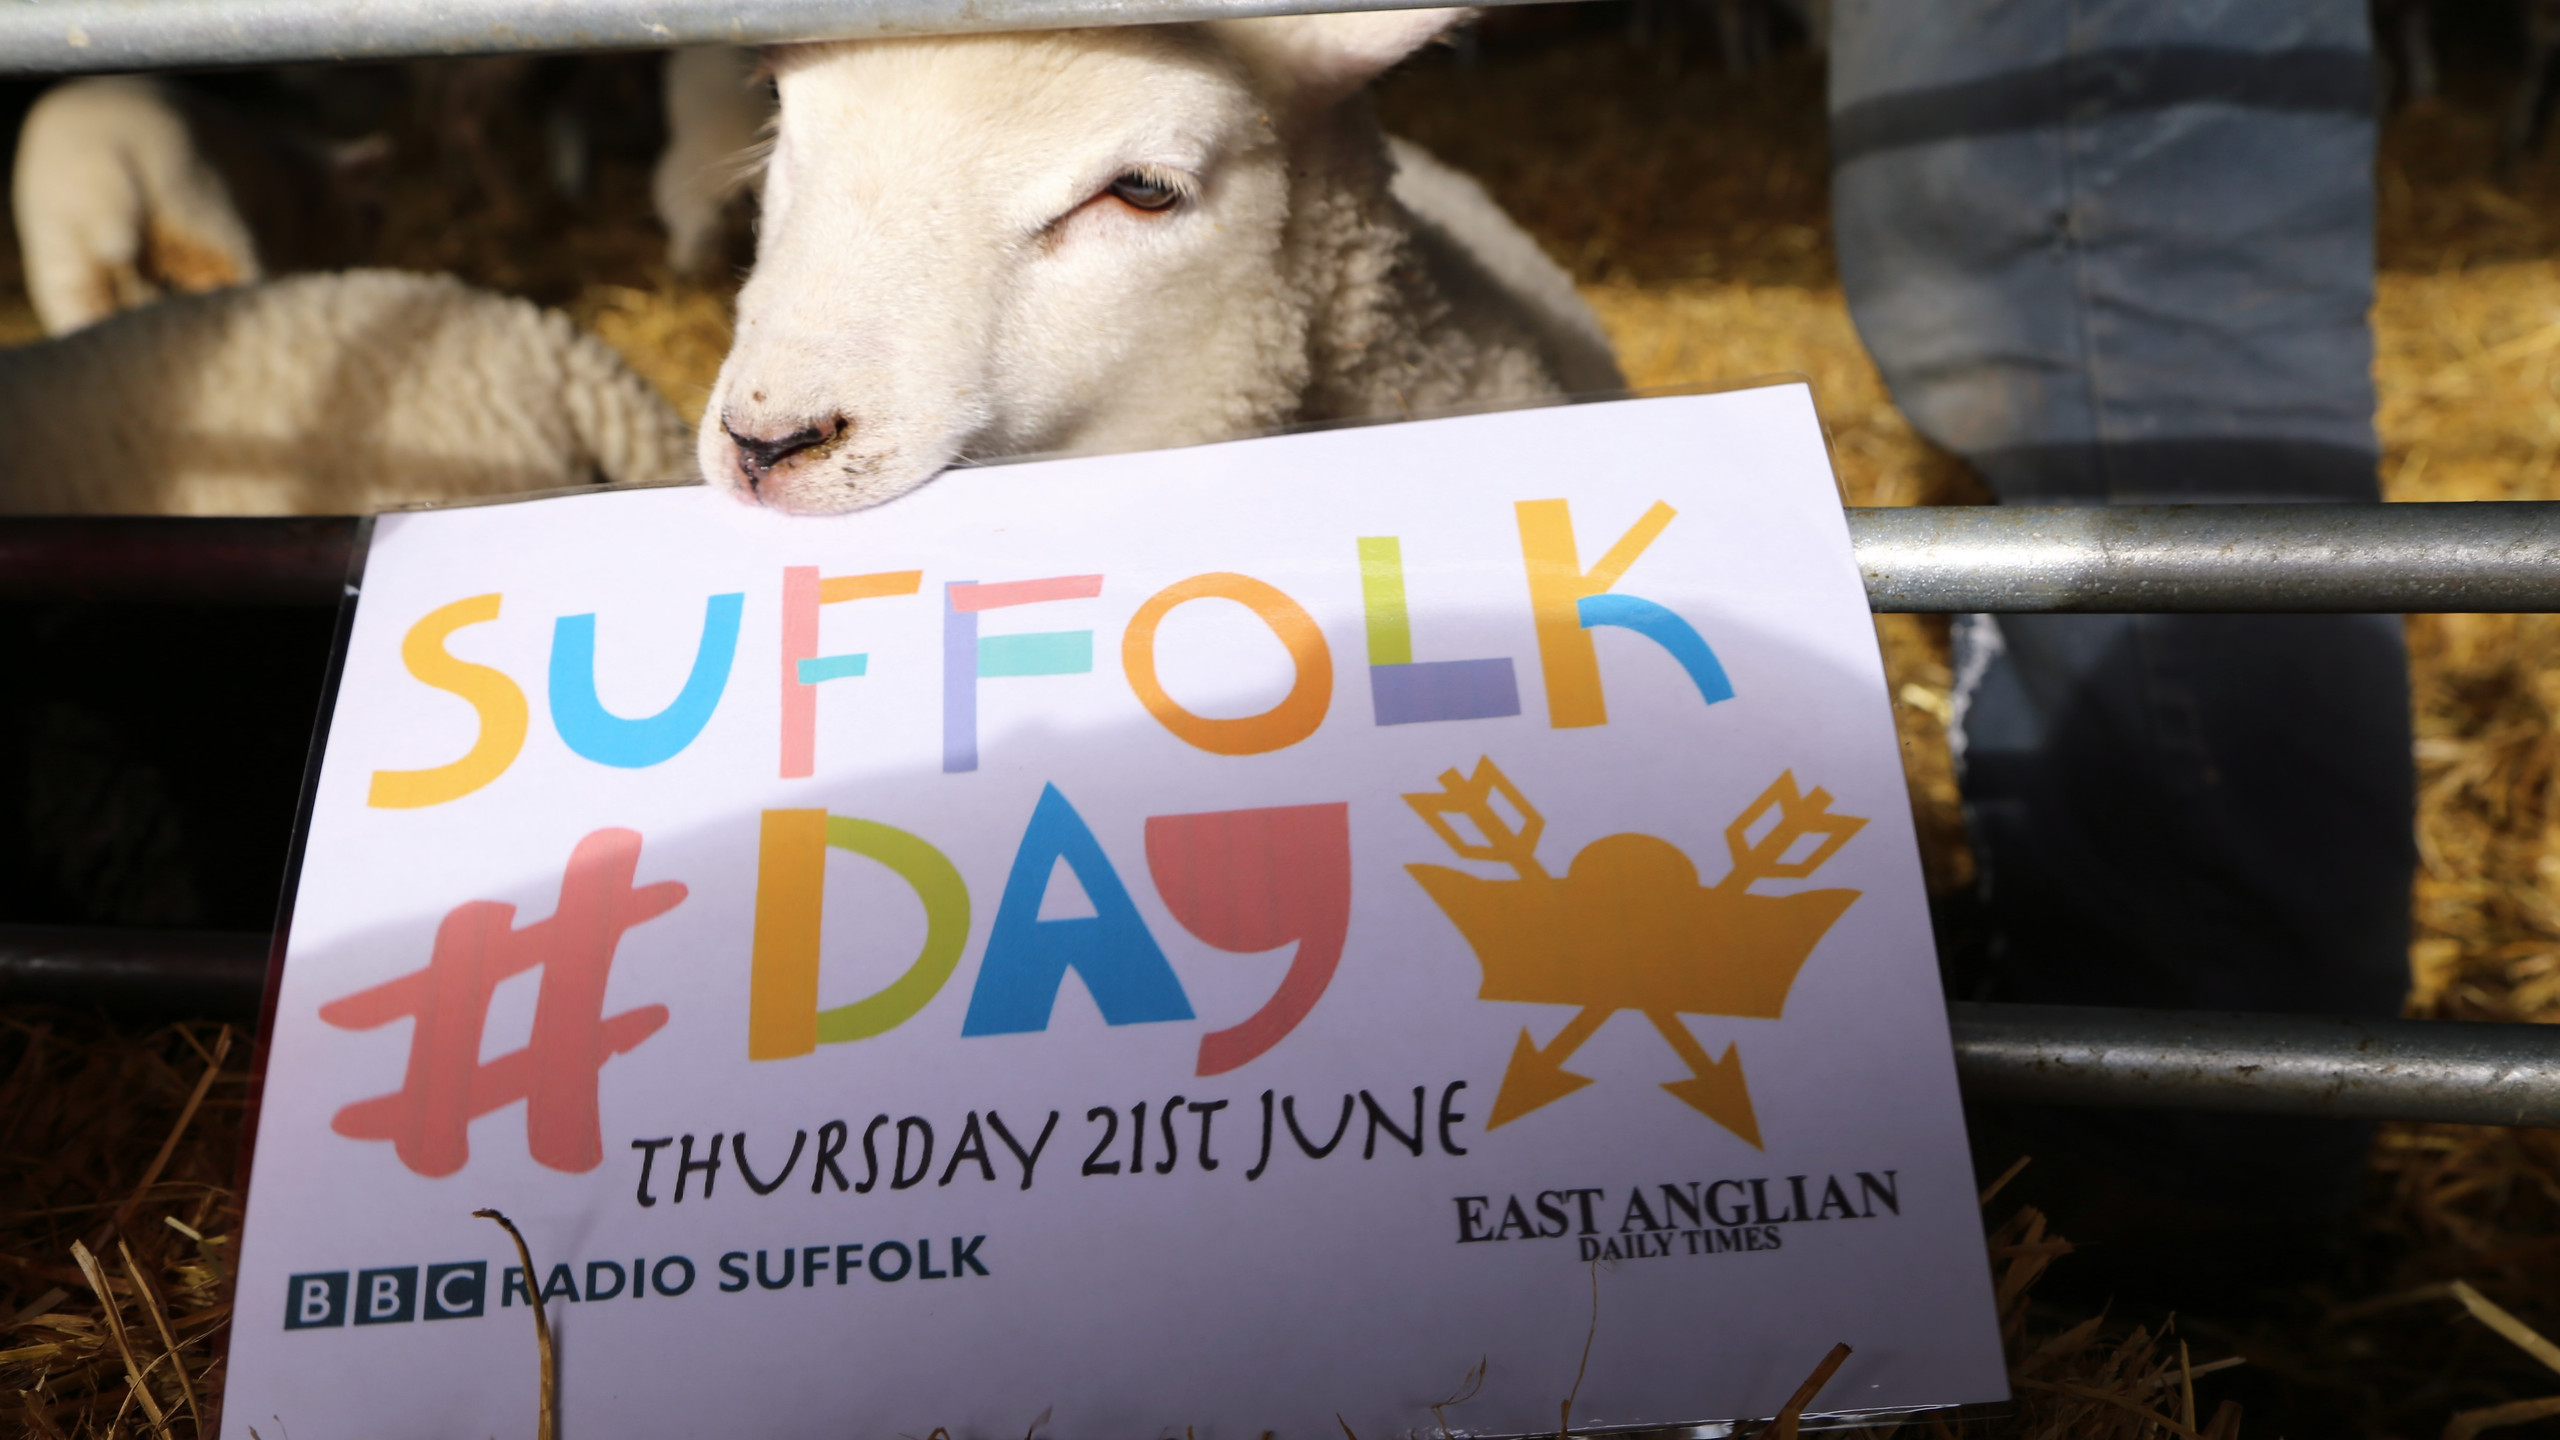 Lambs are interested in Suffolk Day